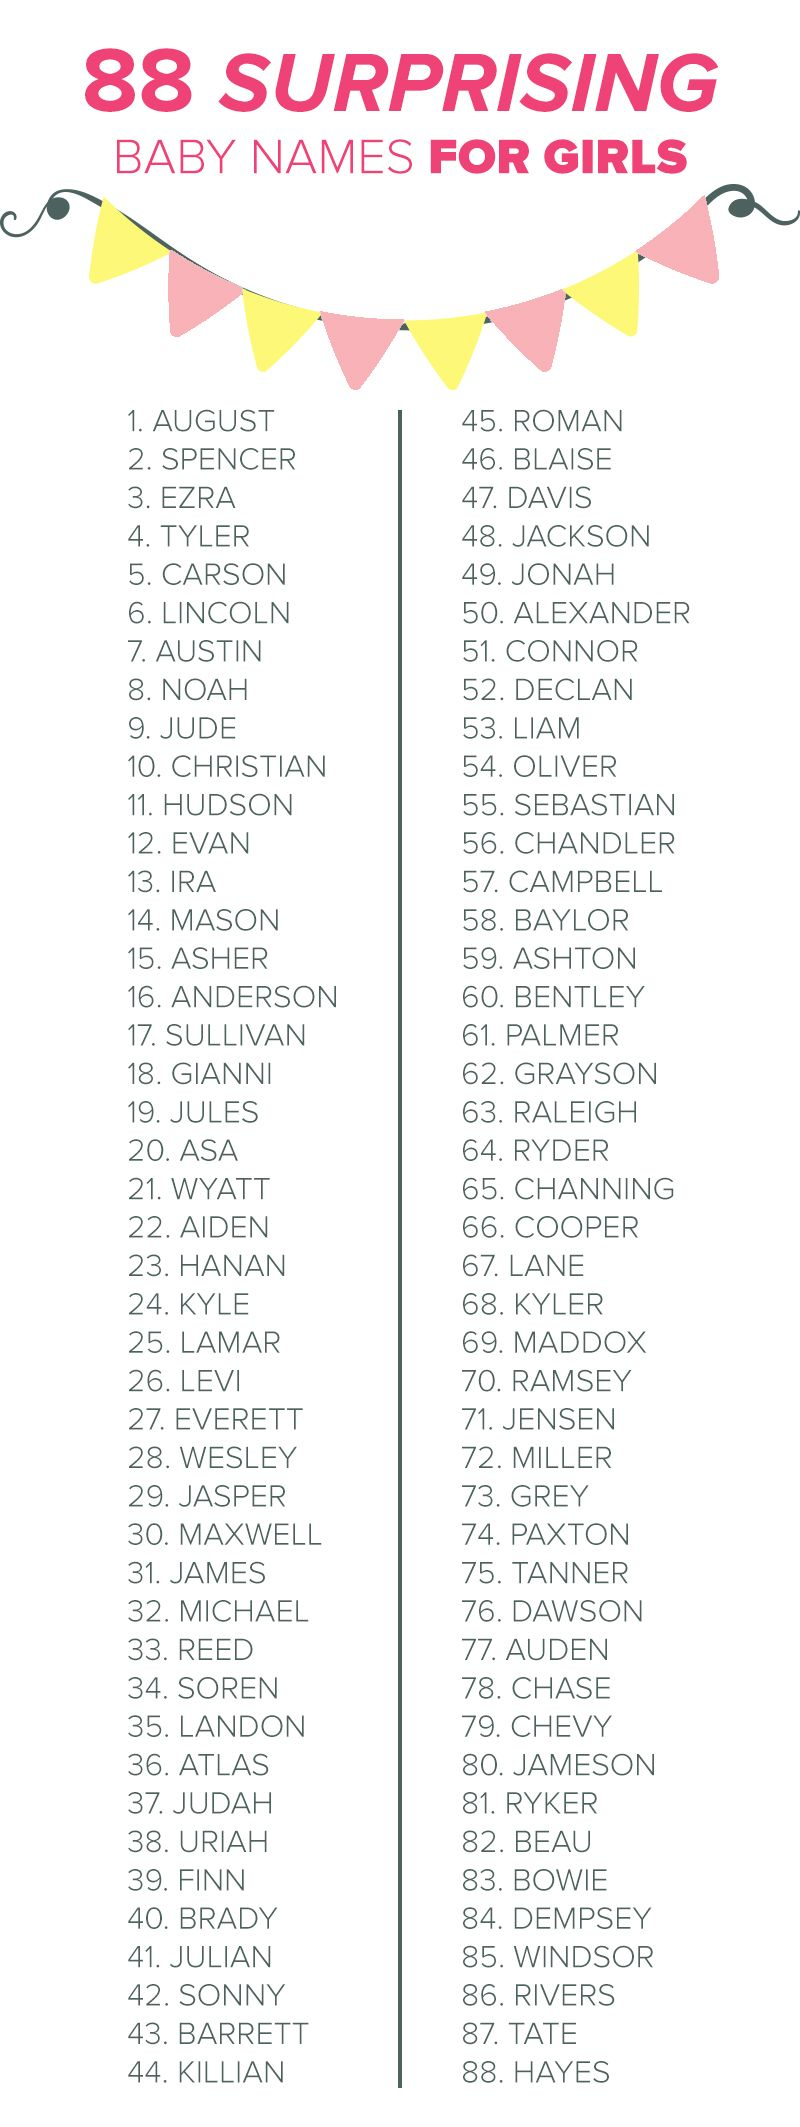 88 traditional boys' names that are now being used for ...